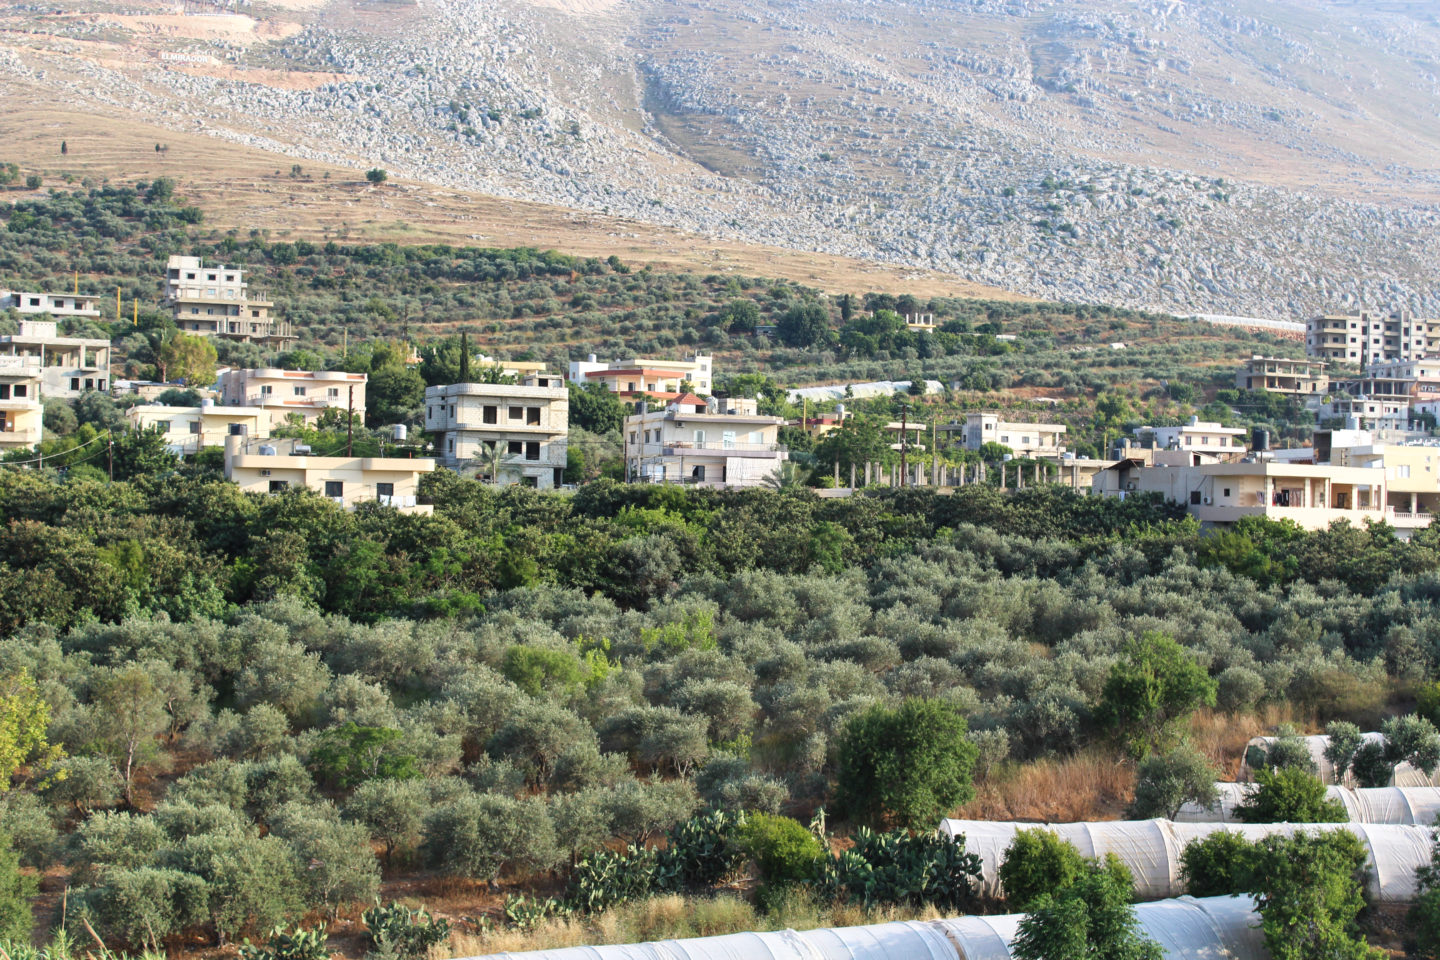 A rural food revolution is growing in Lebanon's olive groves | The Switchers